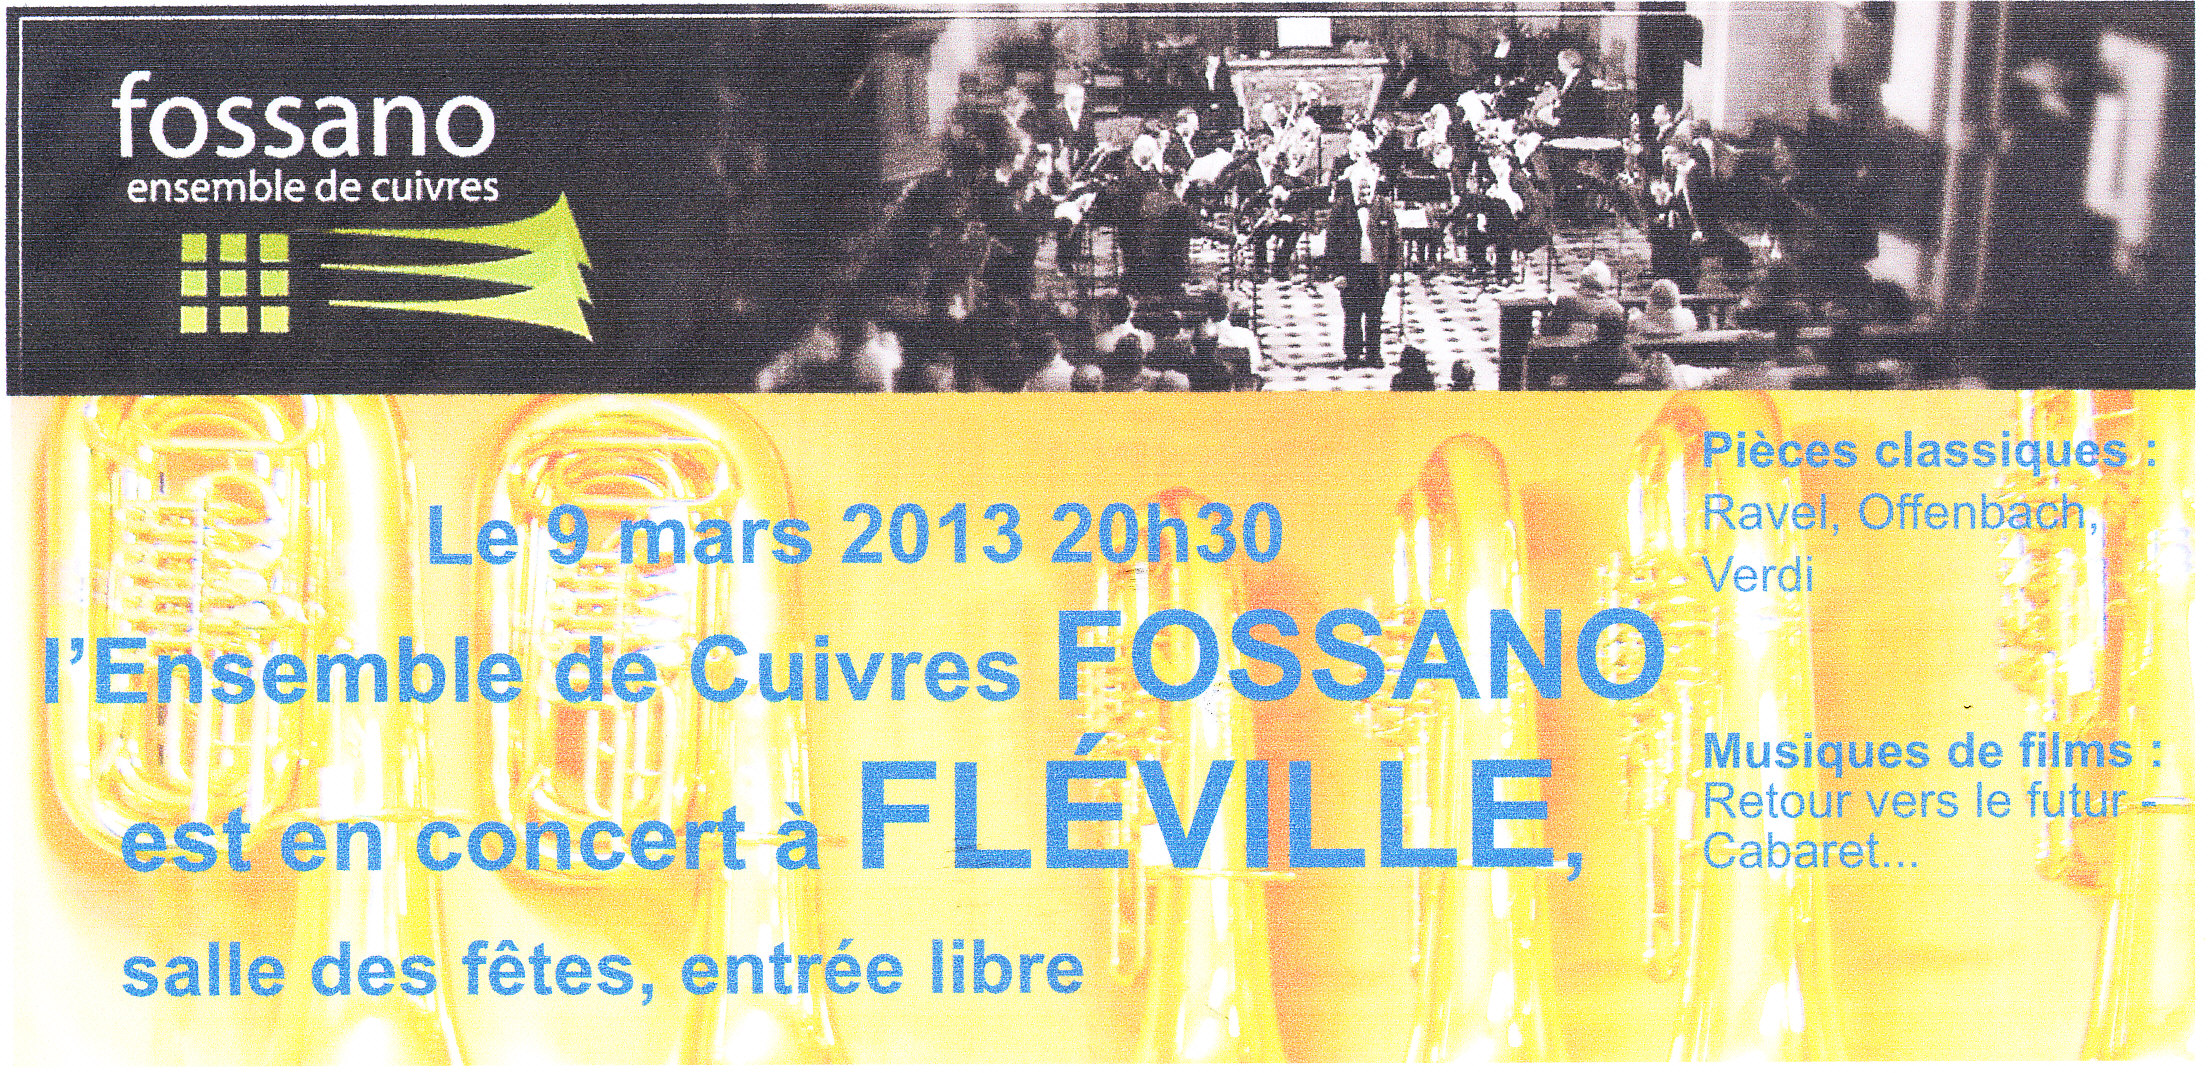 2013-03-02-Flyer de Fleville-devant-Nancy